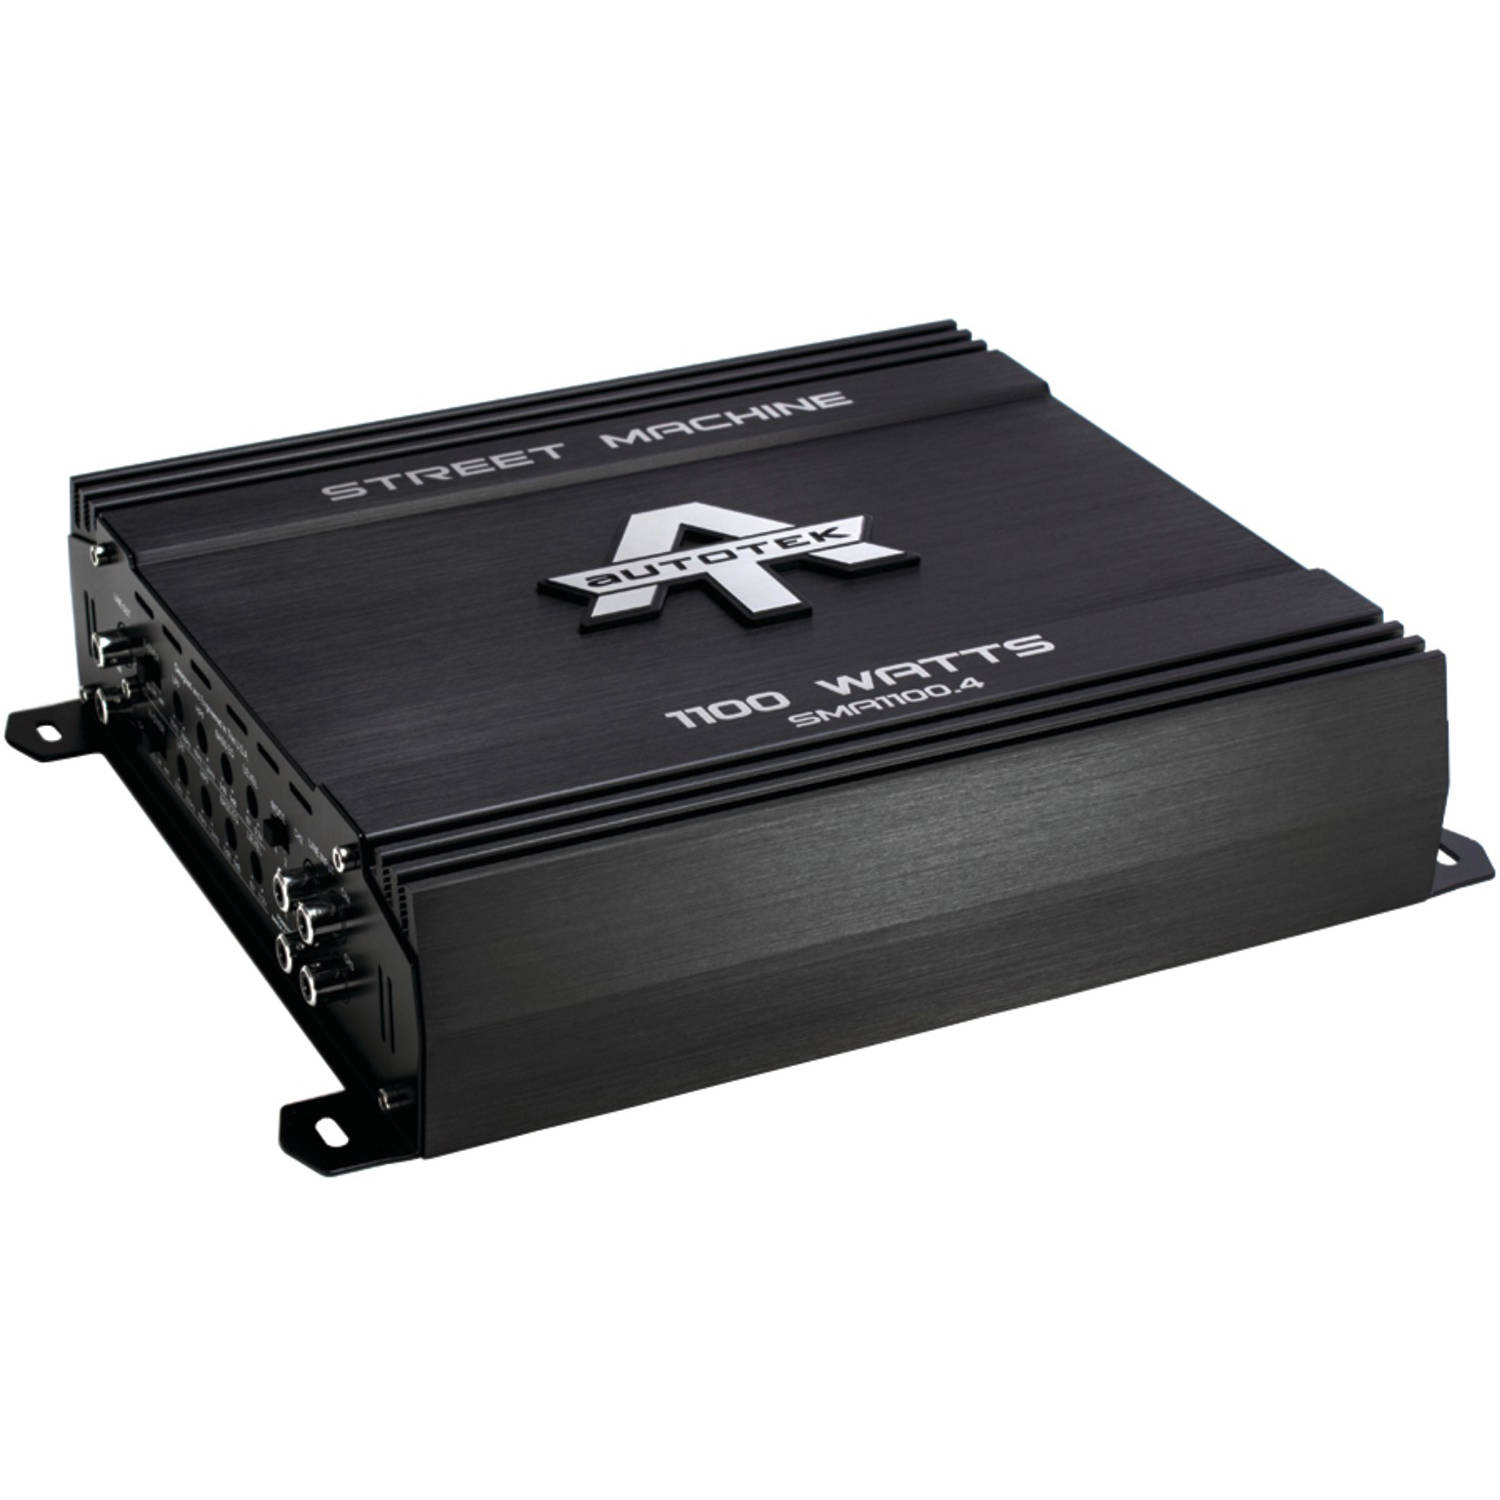 Autotek SMA1100.4 Street Machine 4-Channel Class AB Amp, 1,100 Watts